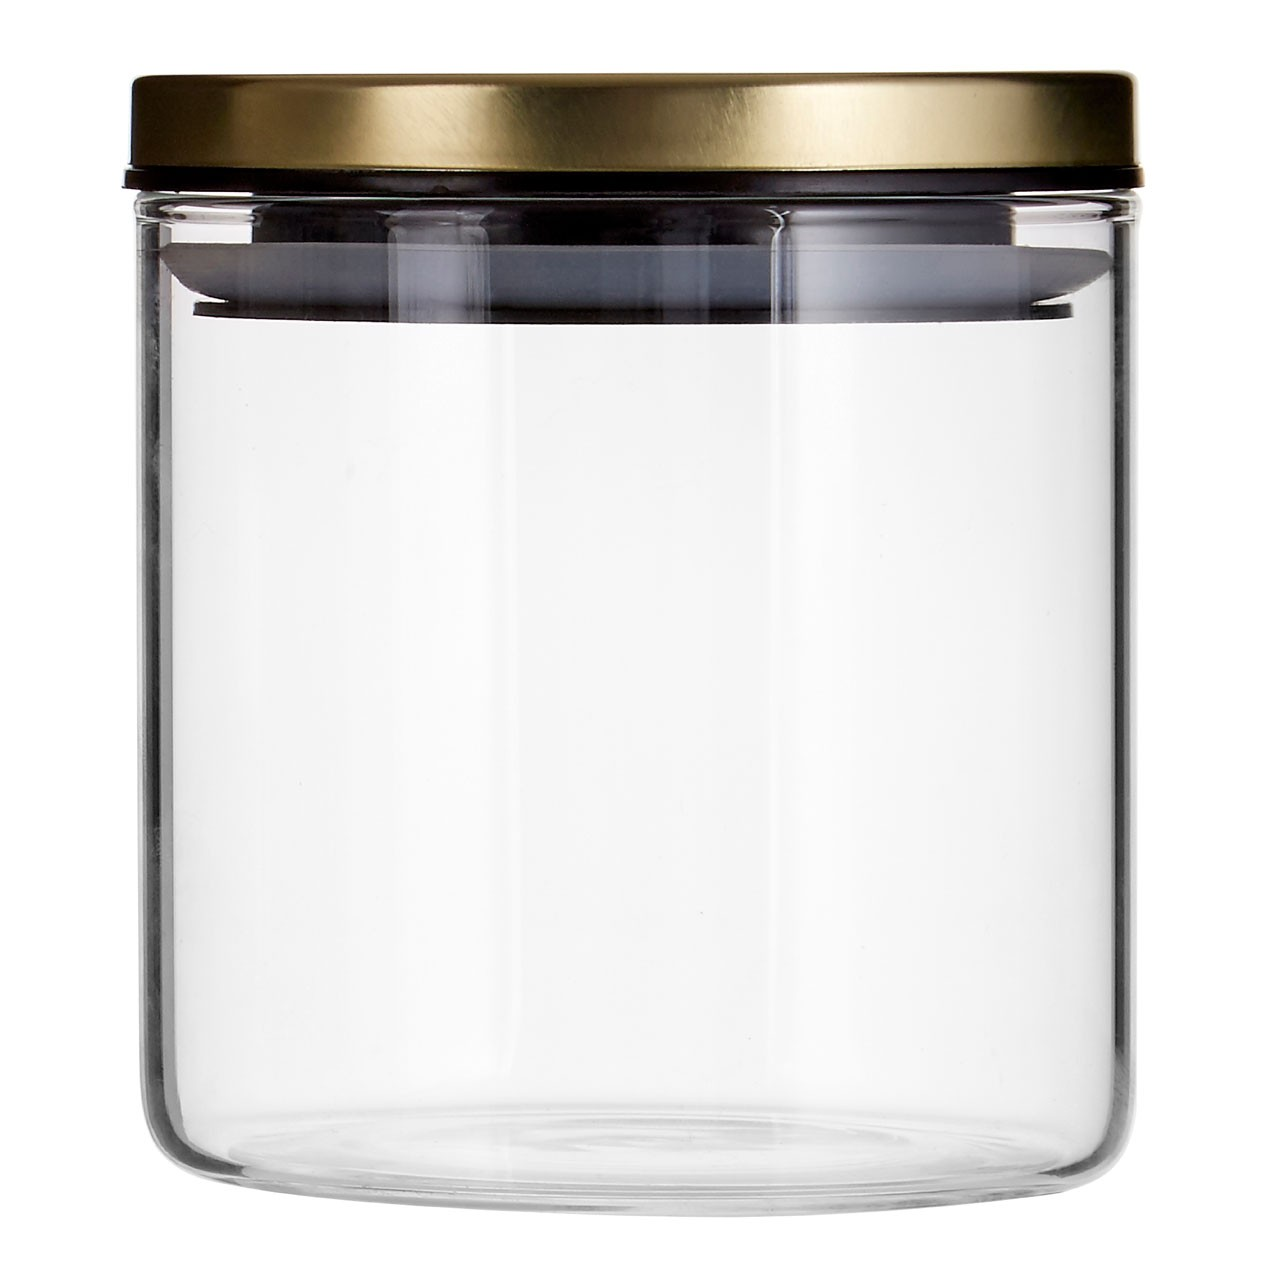 Prime Furnishing Freska Round Glass Storage Jar, 550 ml, Gold